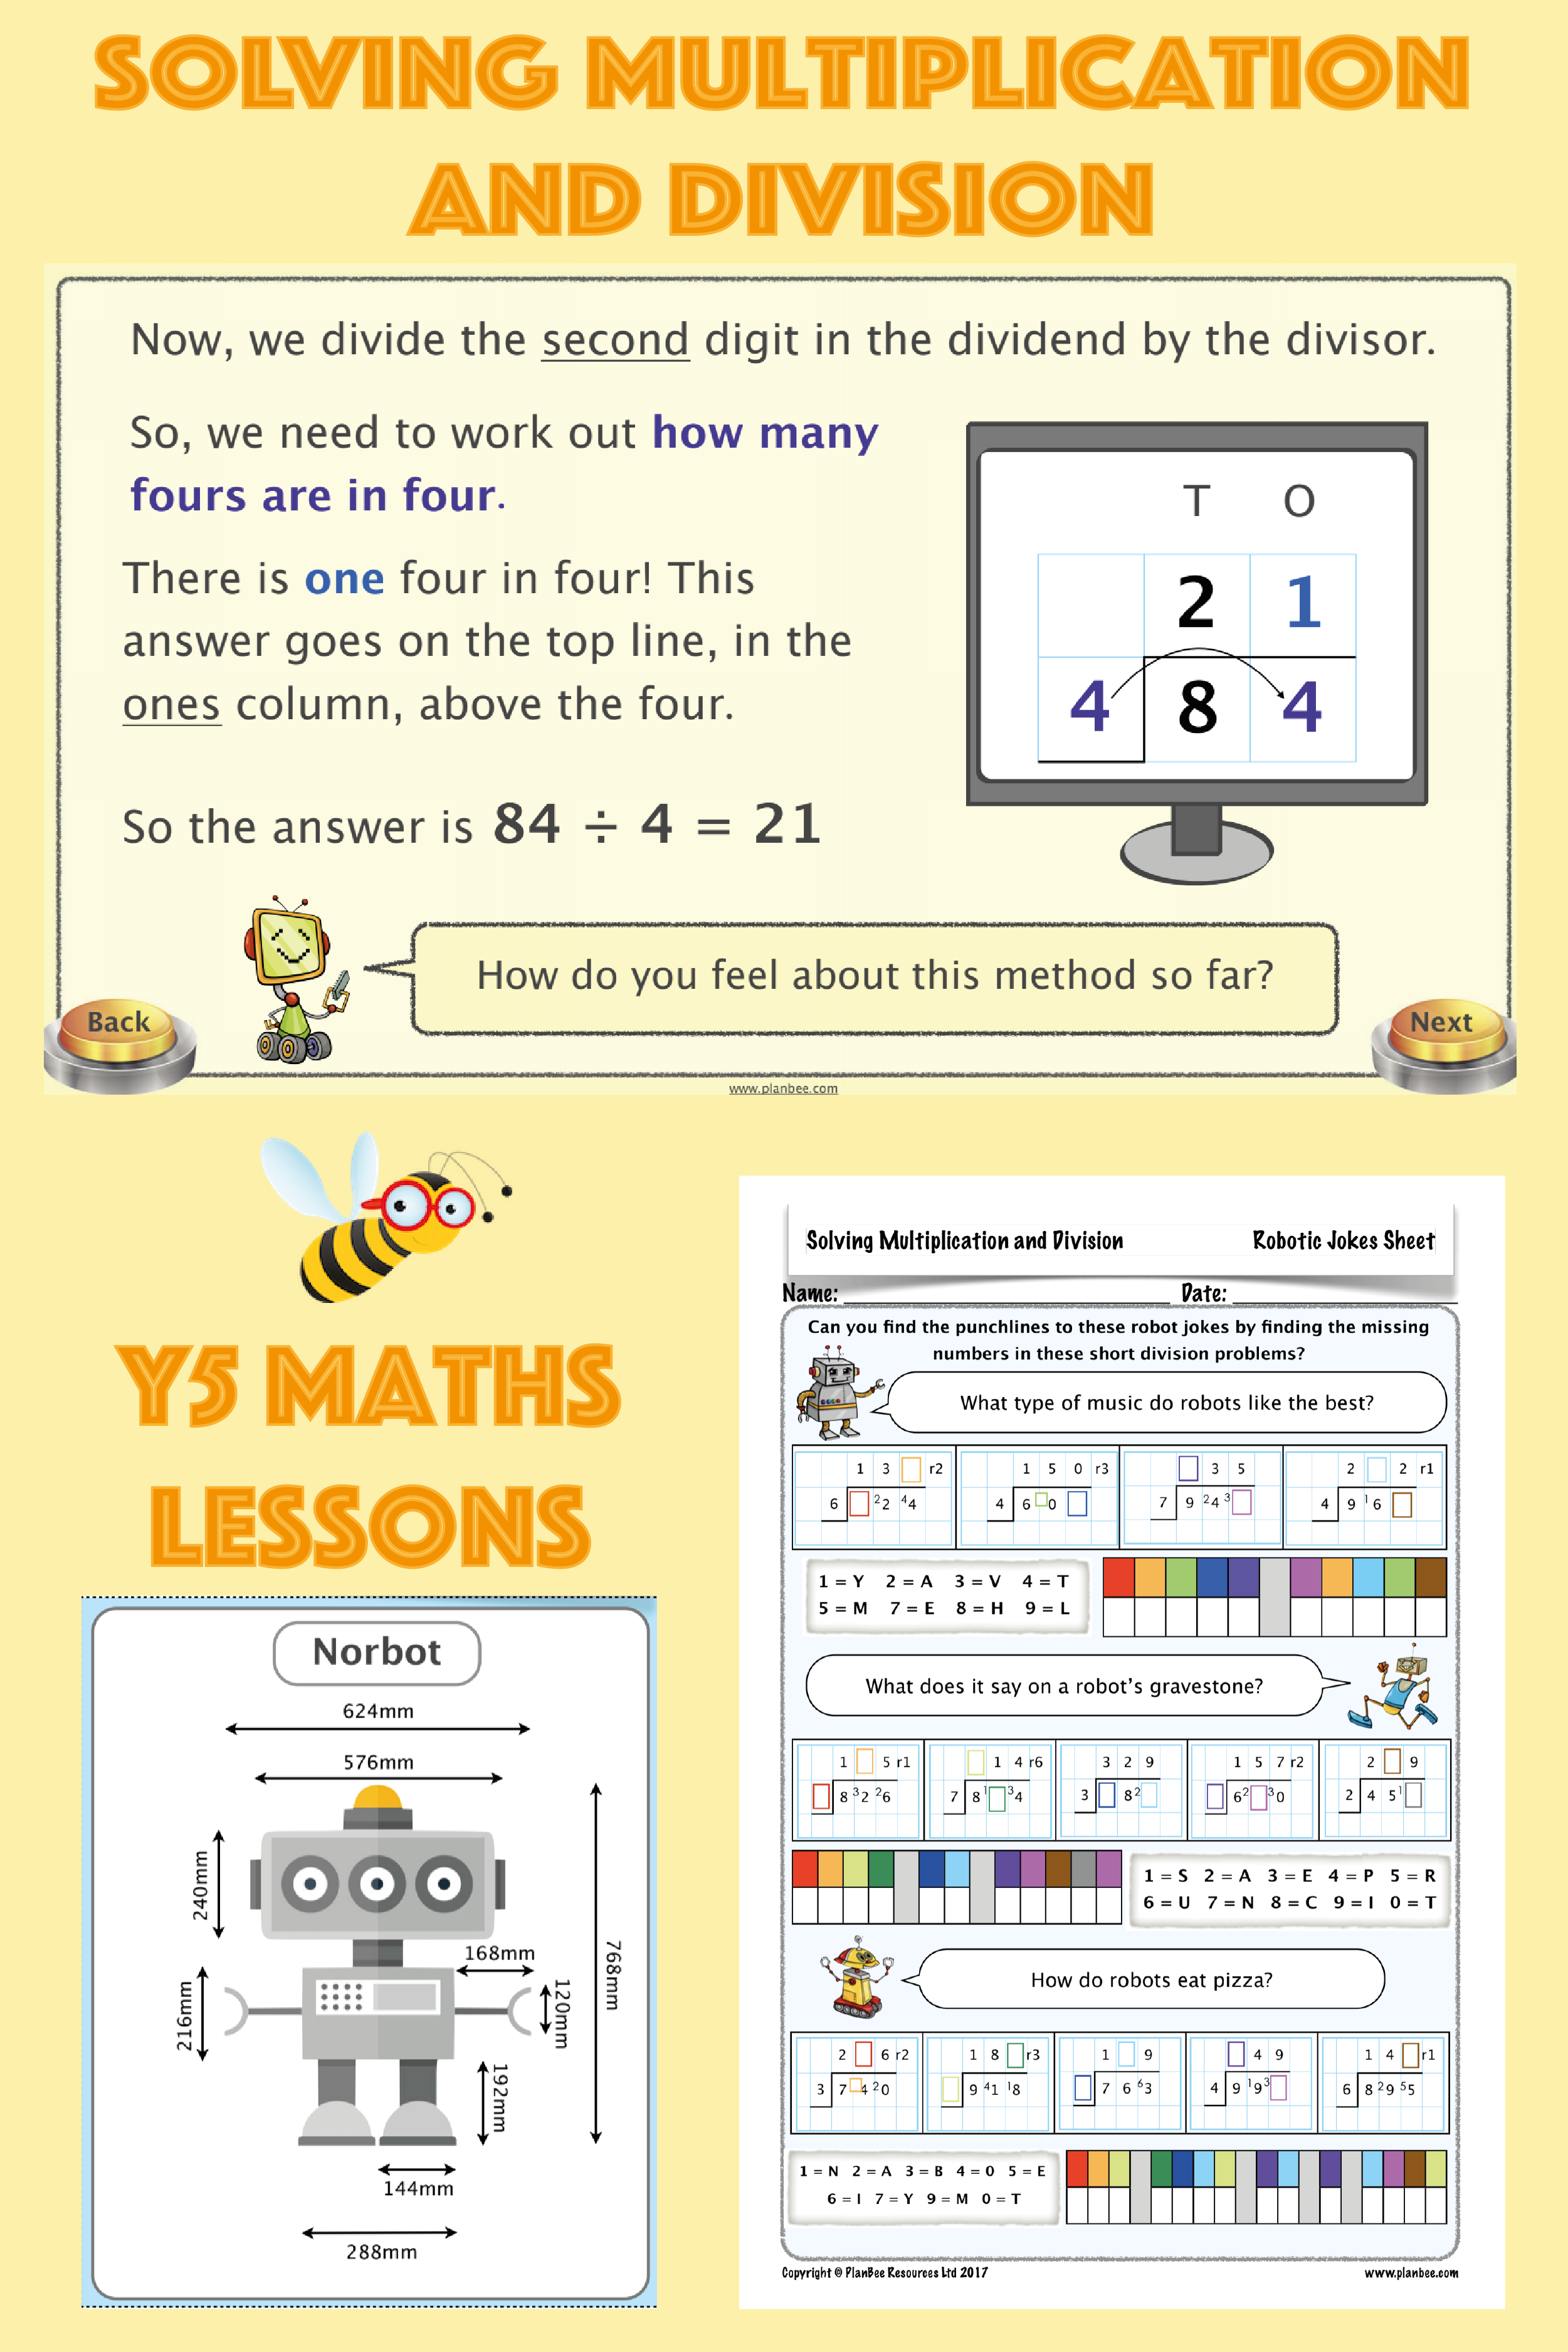 Solving Multiplication And Division